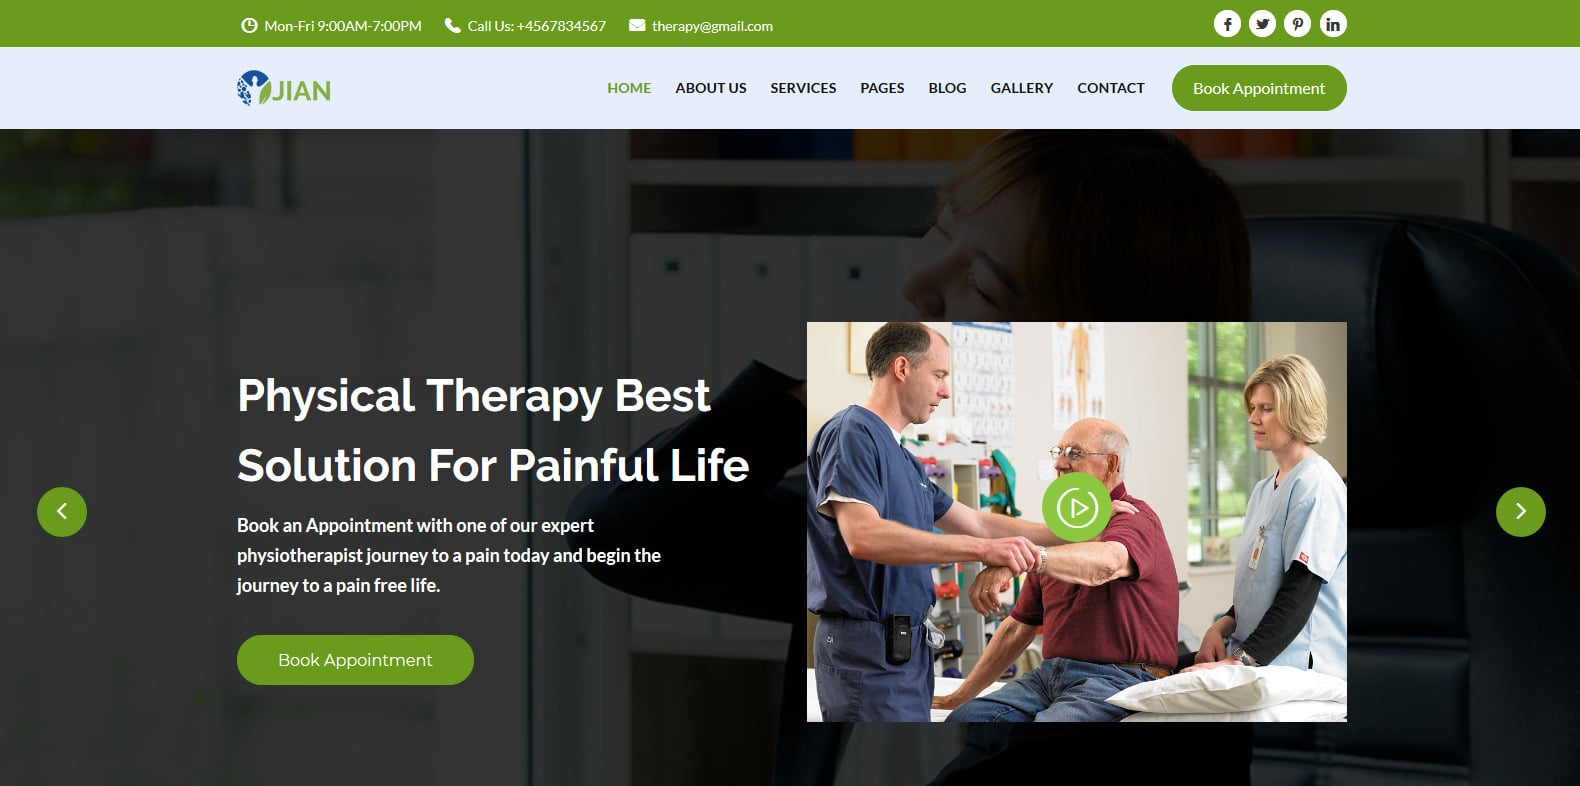 jian-physical-therapy-website-template